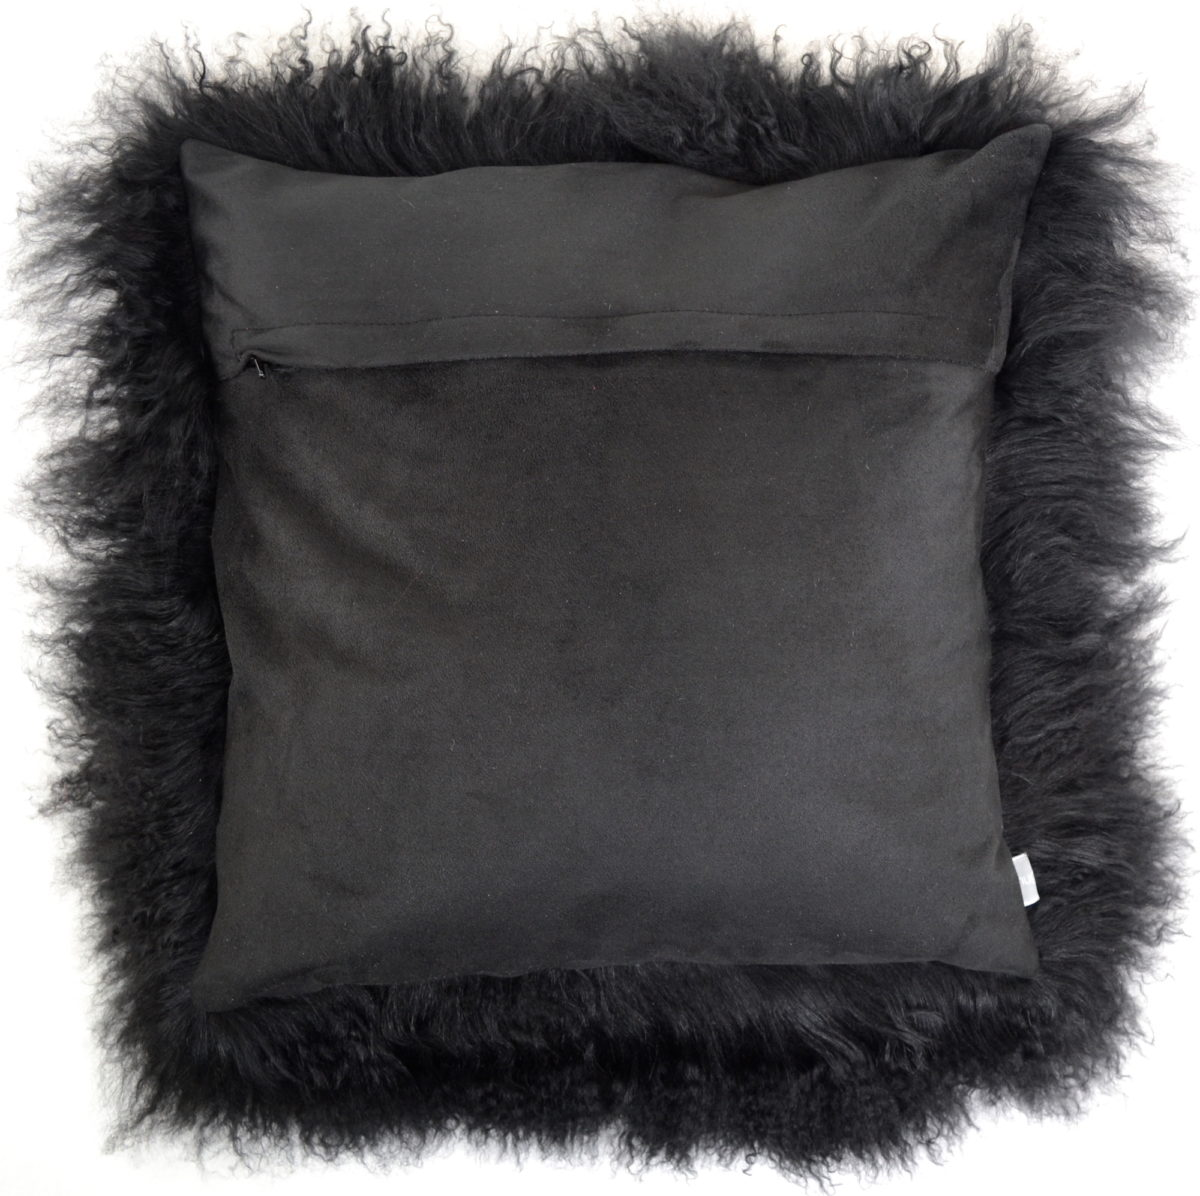 Mongolian Sheepskin Cushion 60cm X 60cm Black Snugrugs